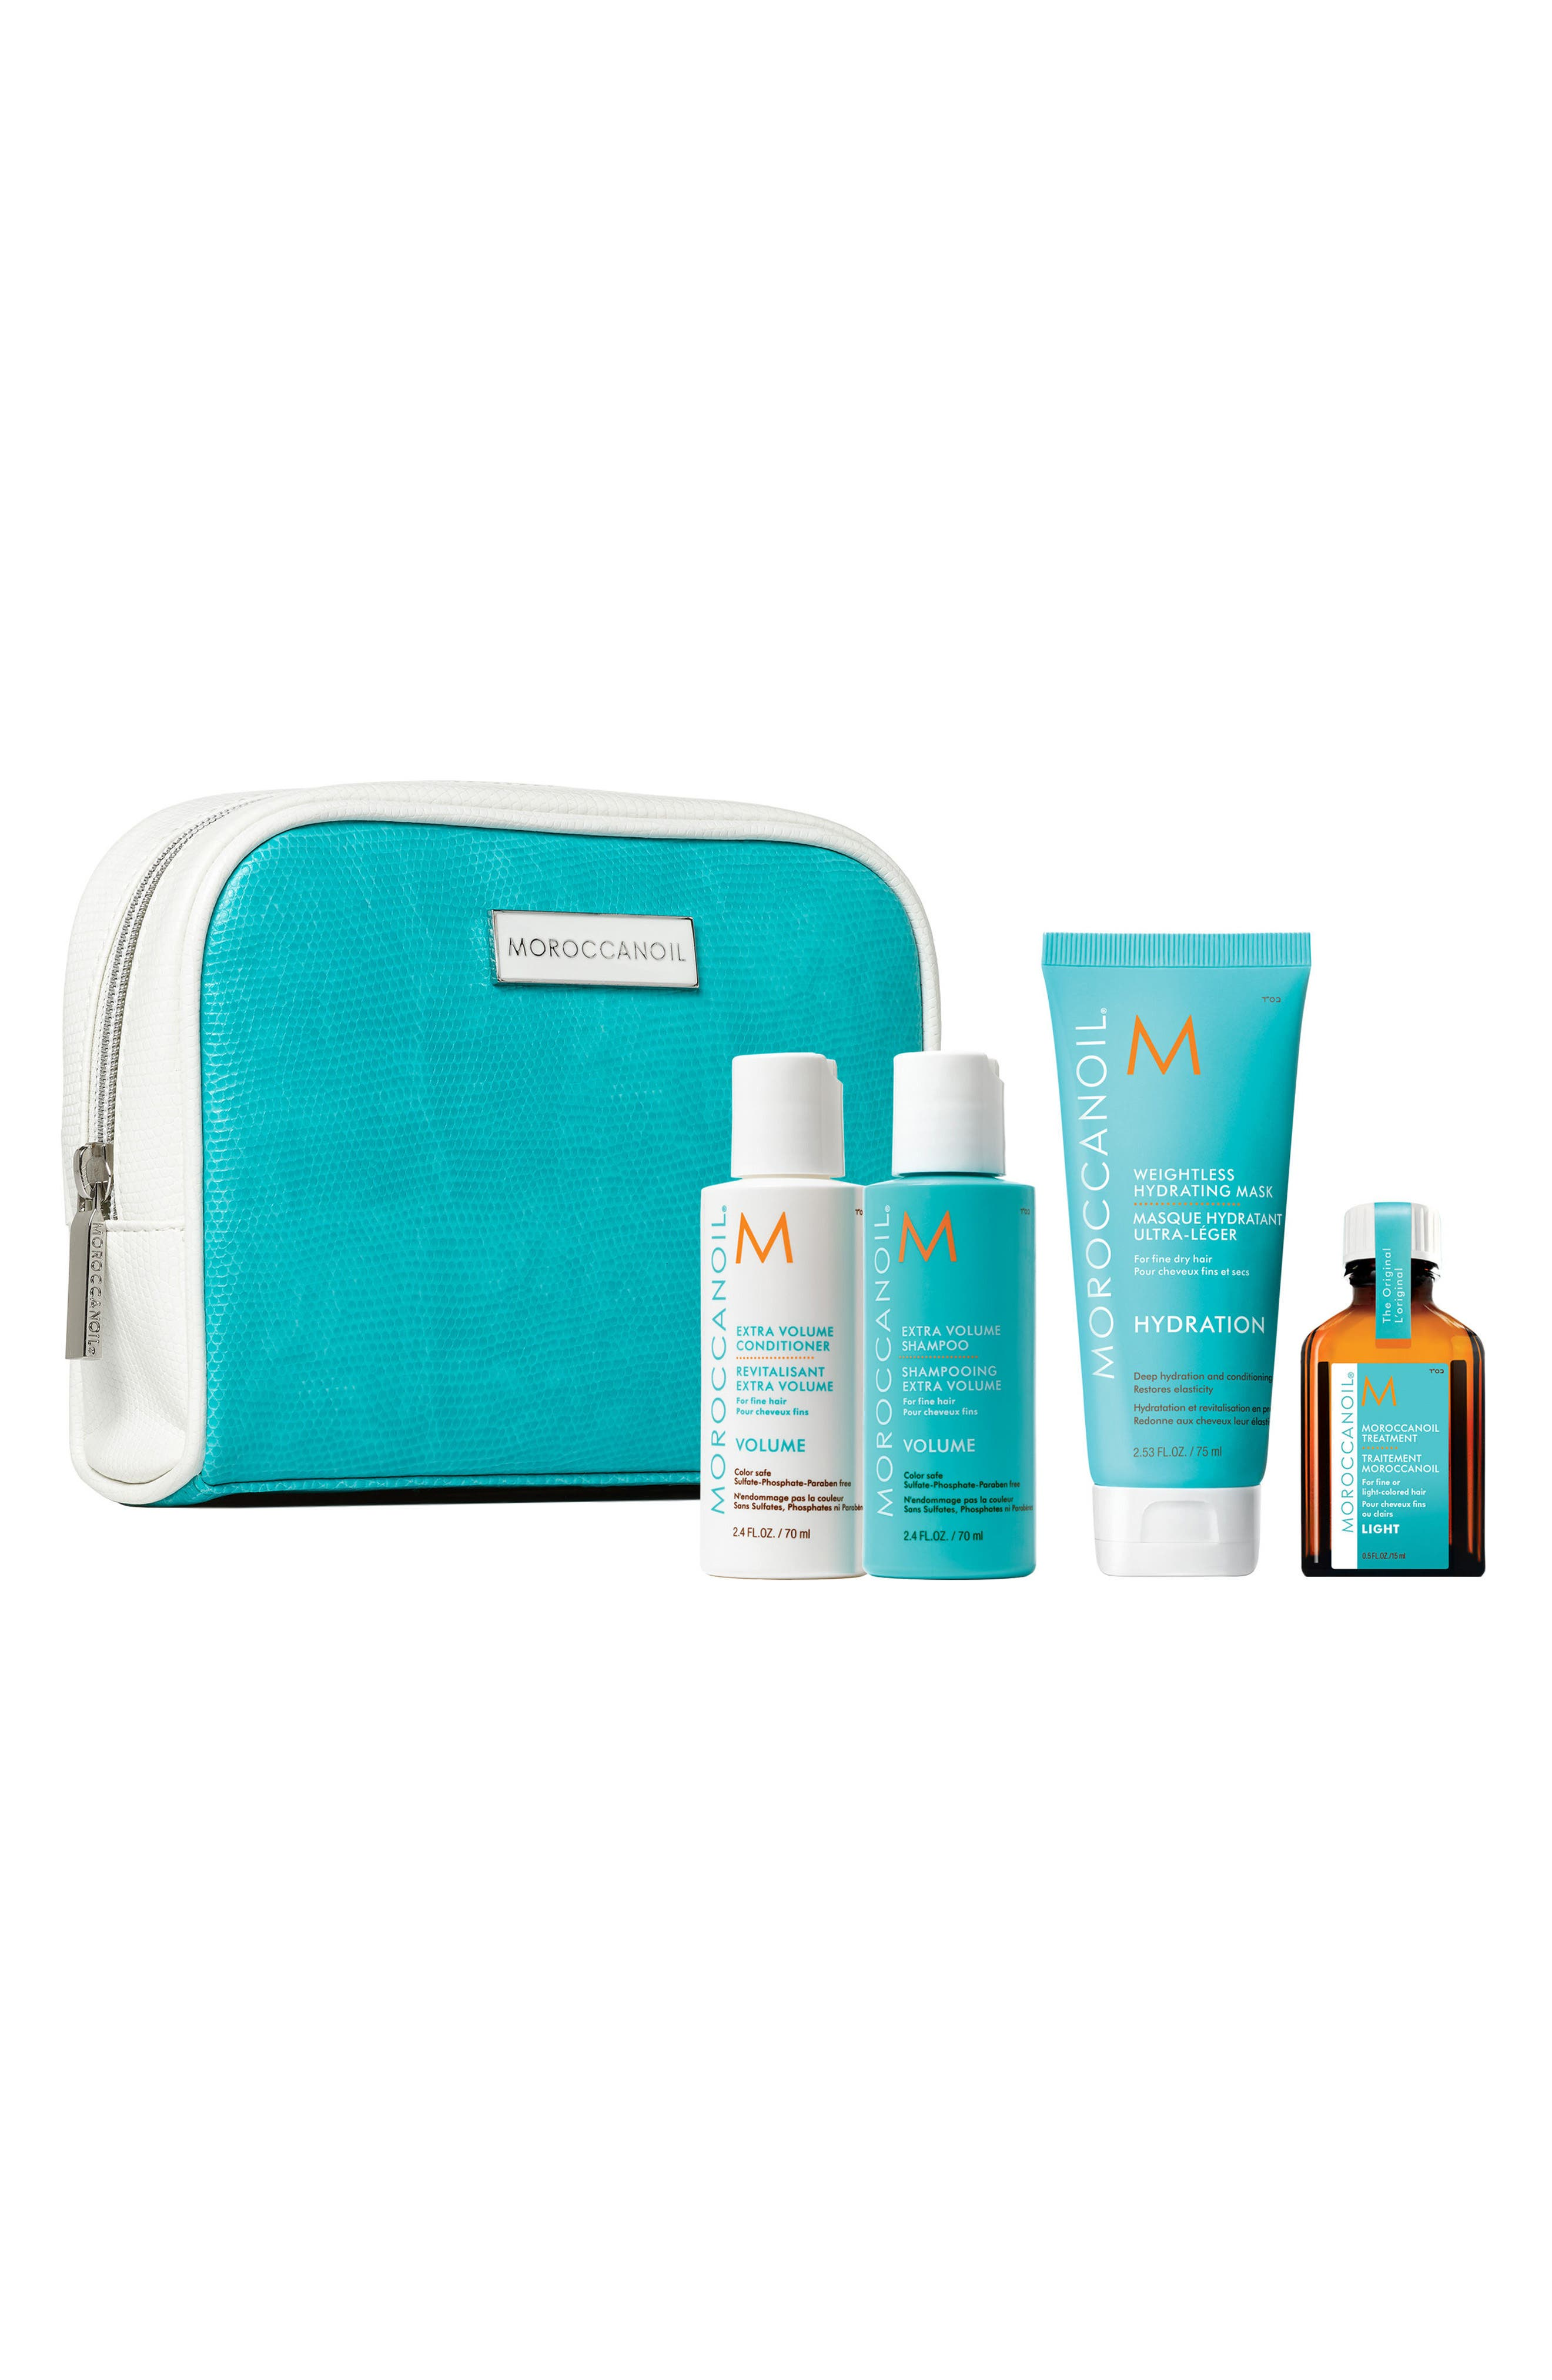 MOROCCANOIL® Volume Travel Kit ($55 Value)